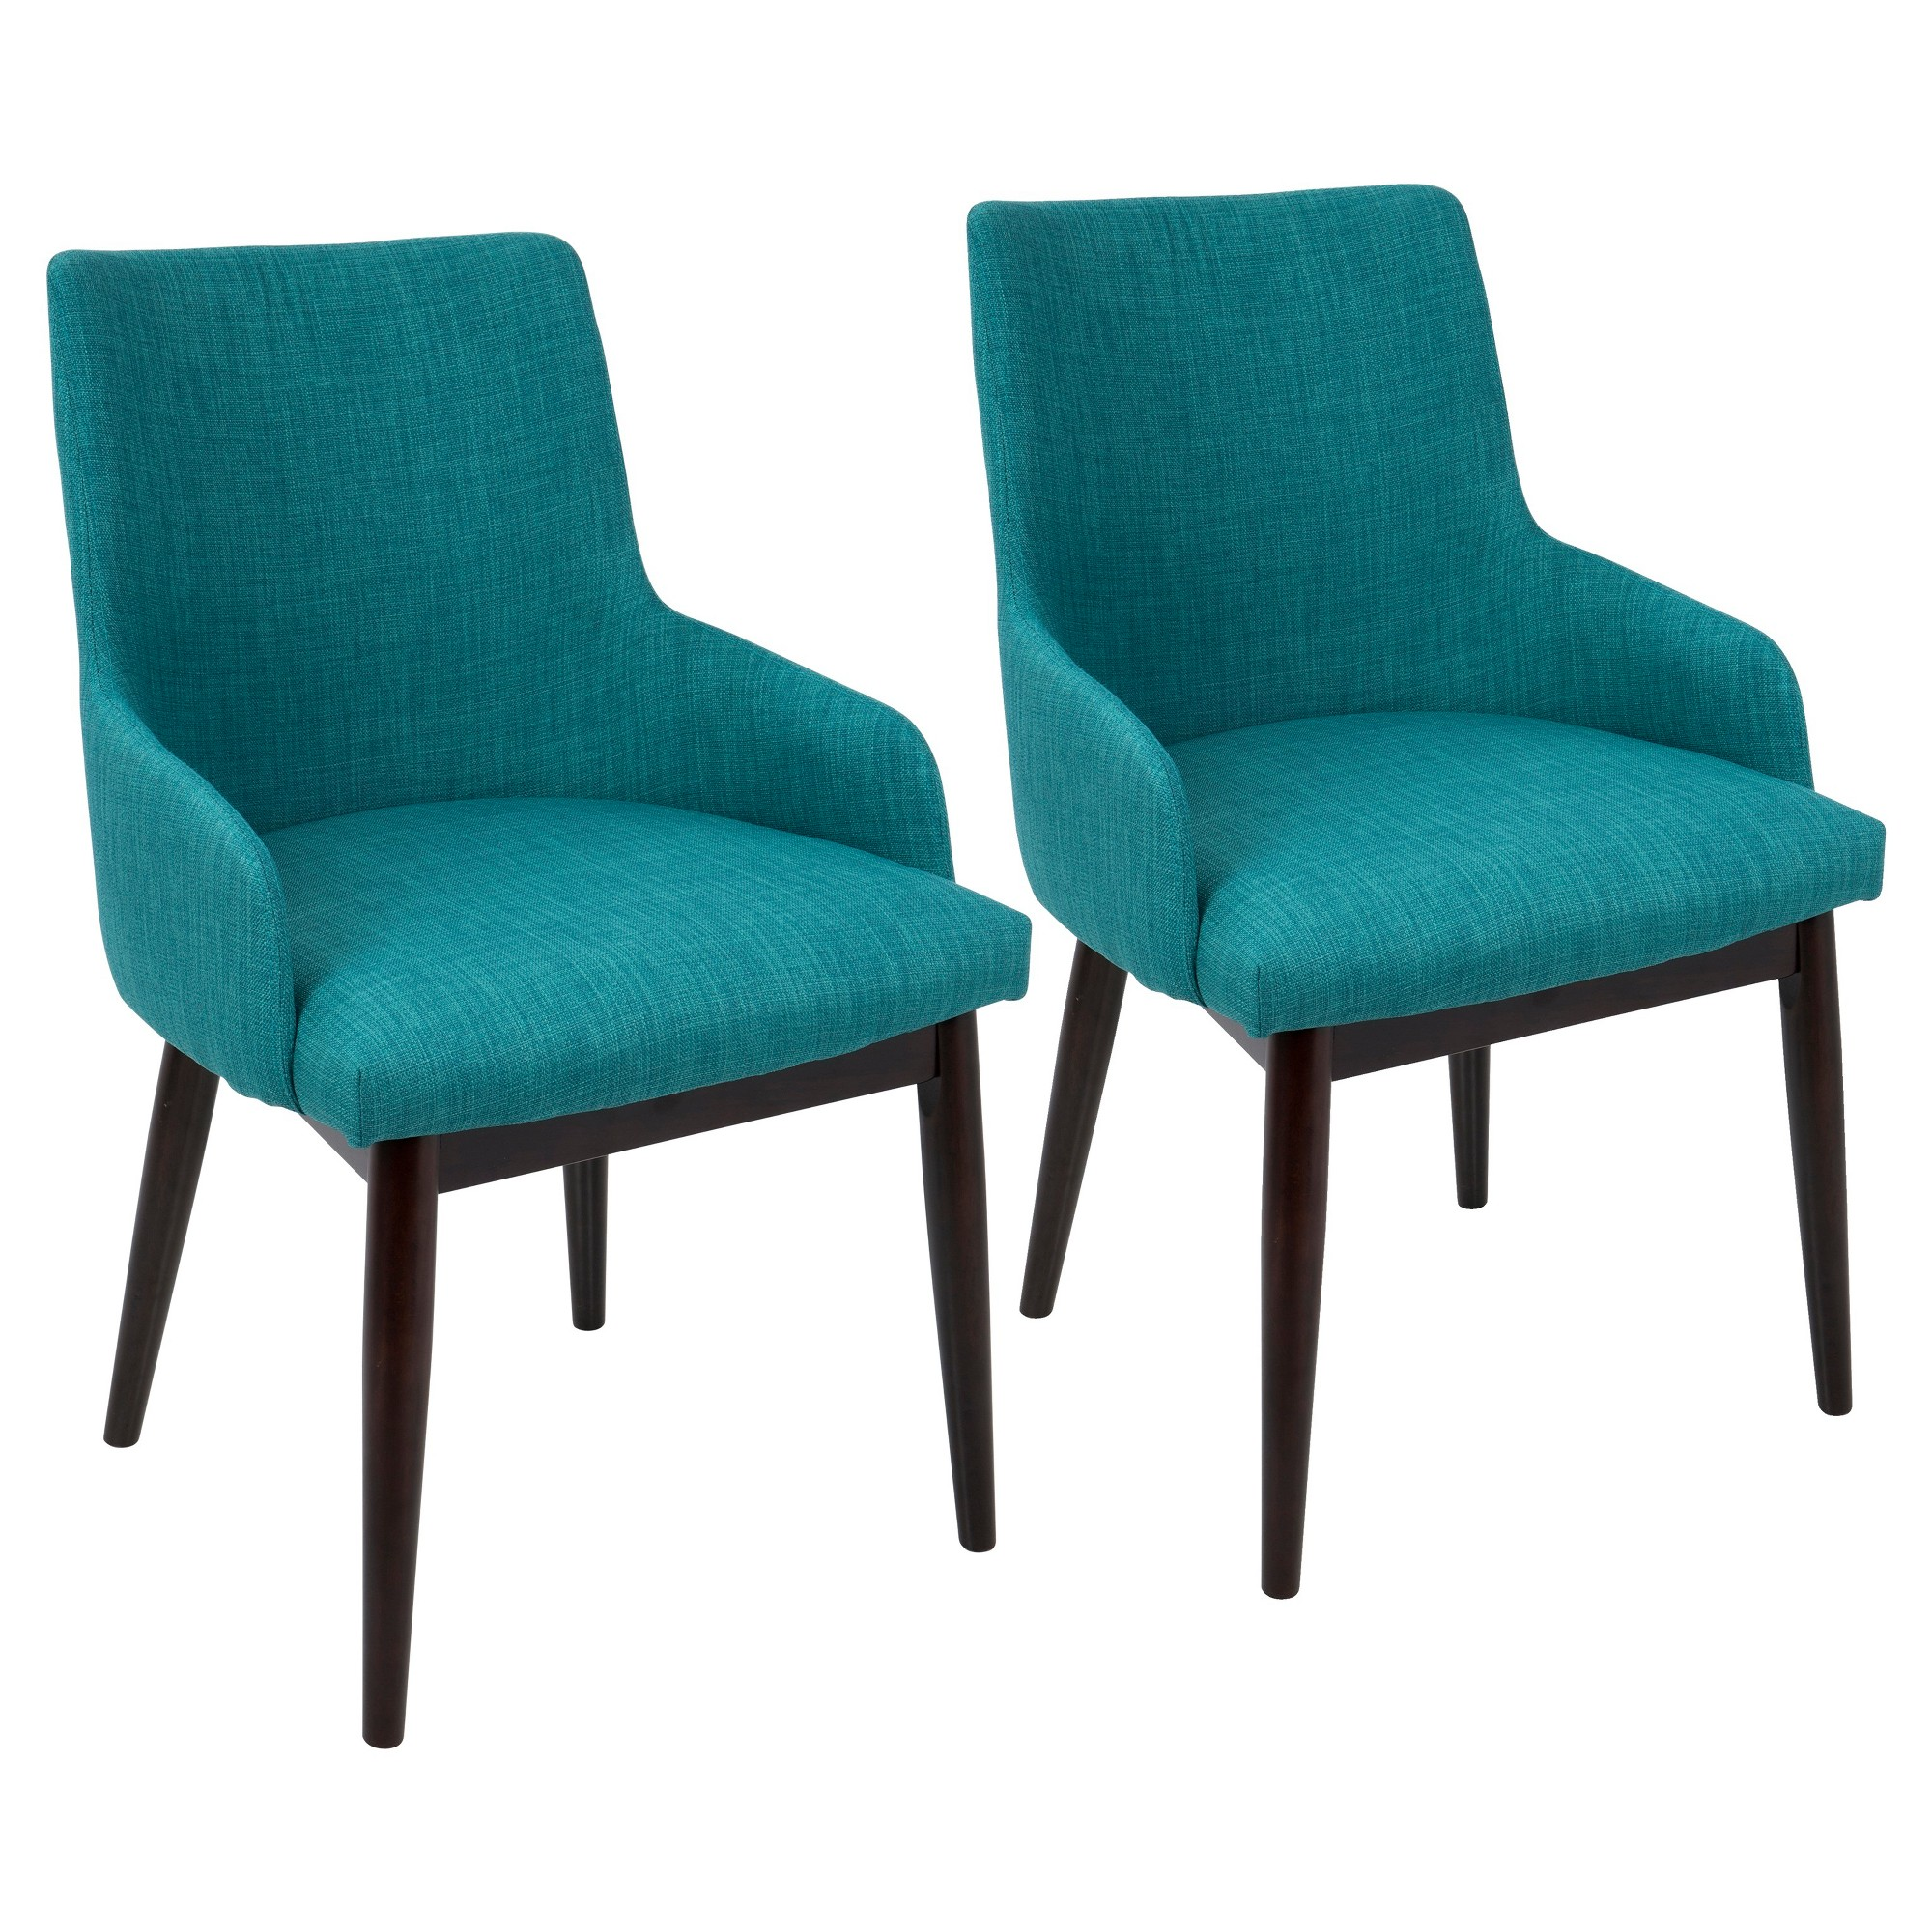 Best Santiago Mid Century Modern Dining Accent Chair Teal 400 x 300